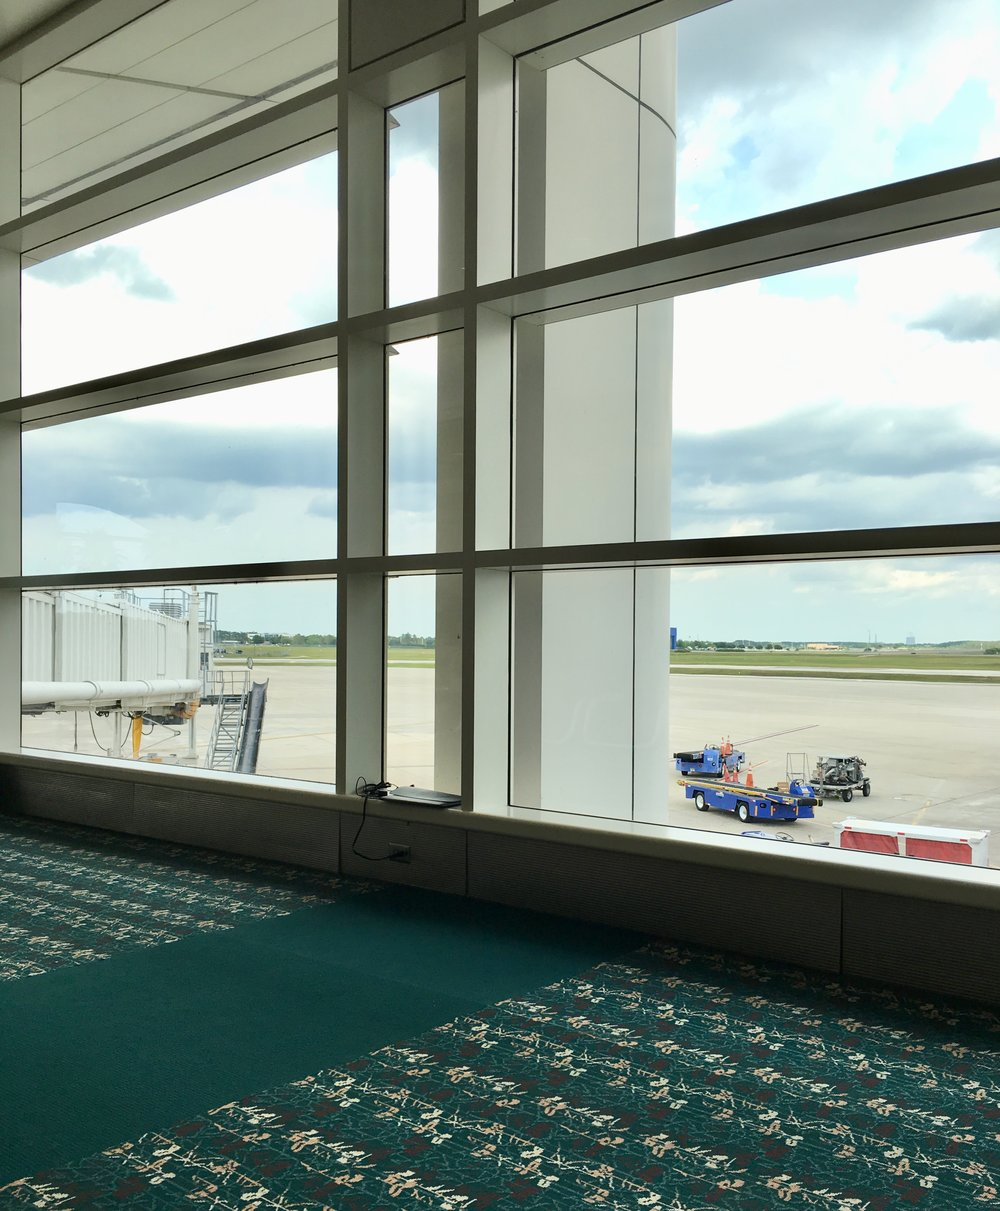 orlando-international-airport.jpg